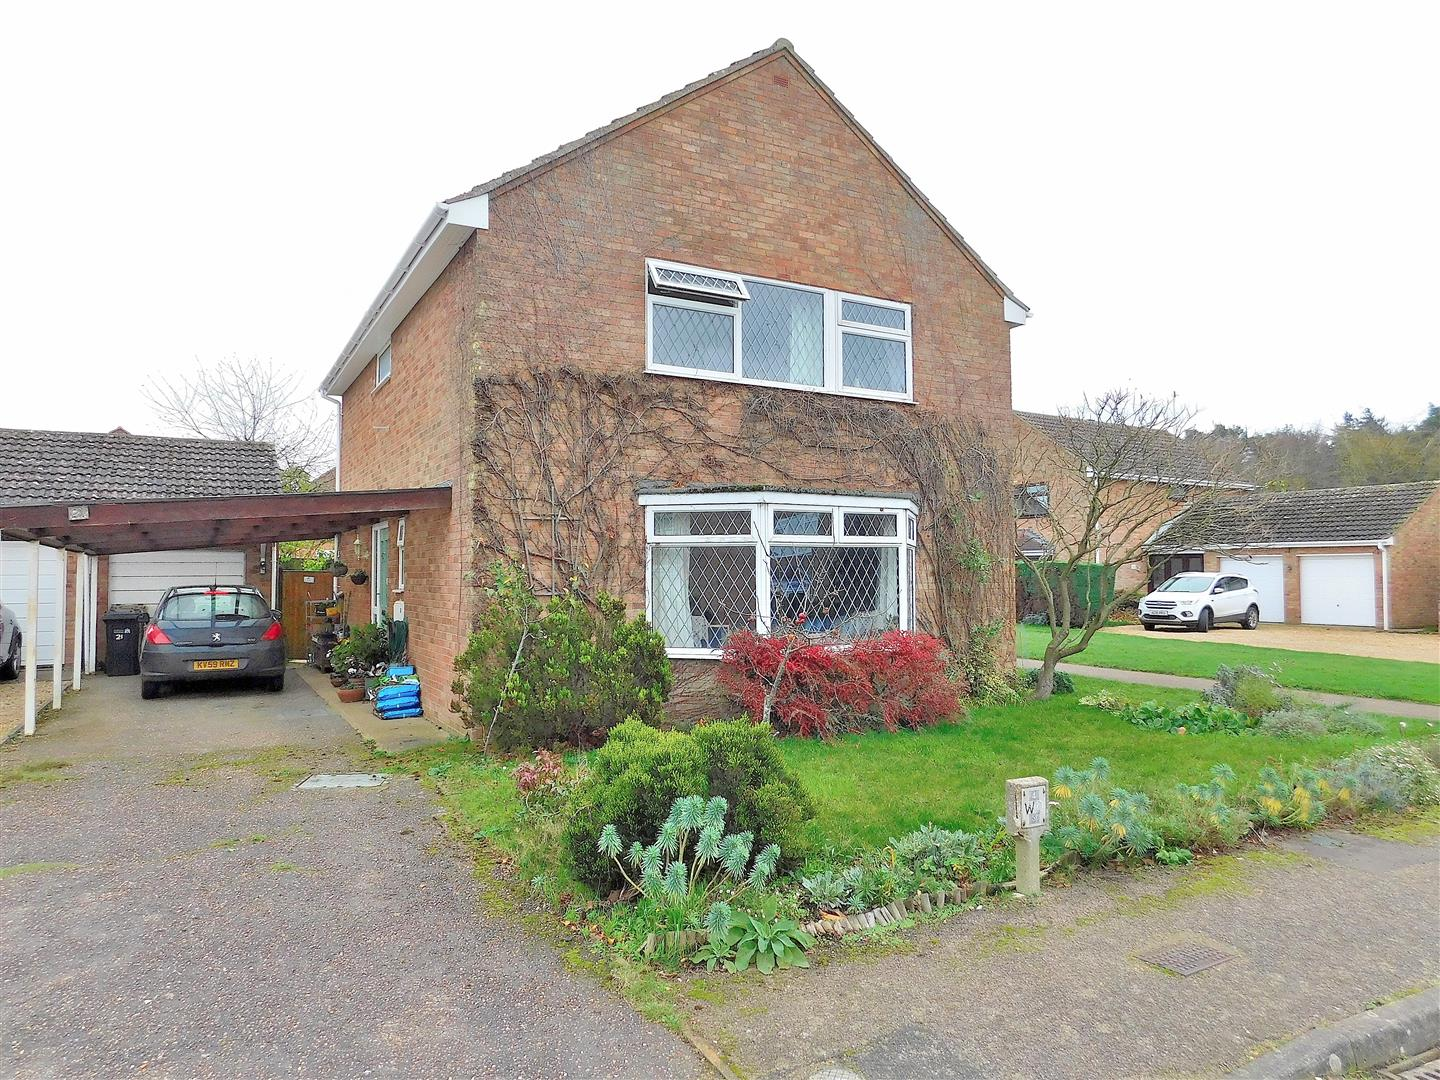 4 bed detached house for sale in King's Lynn, PE30 3NL - Property Image 1